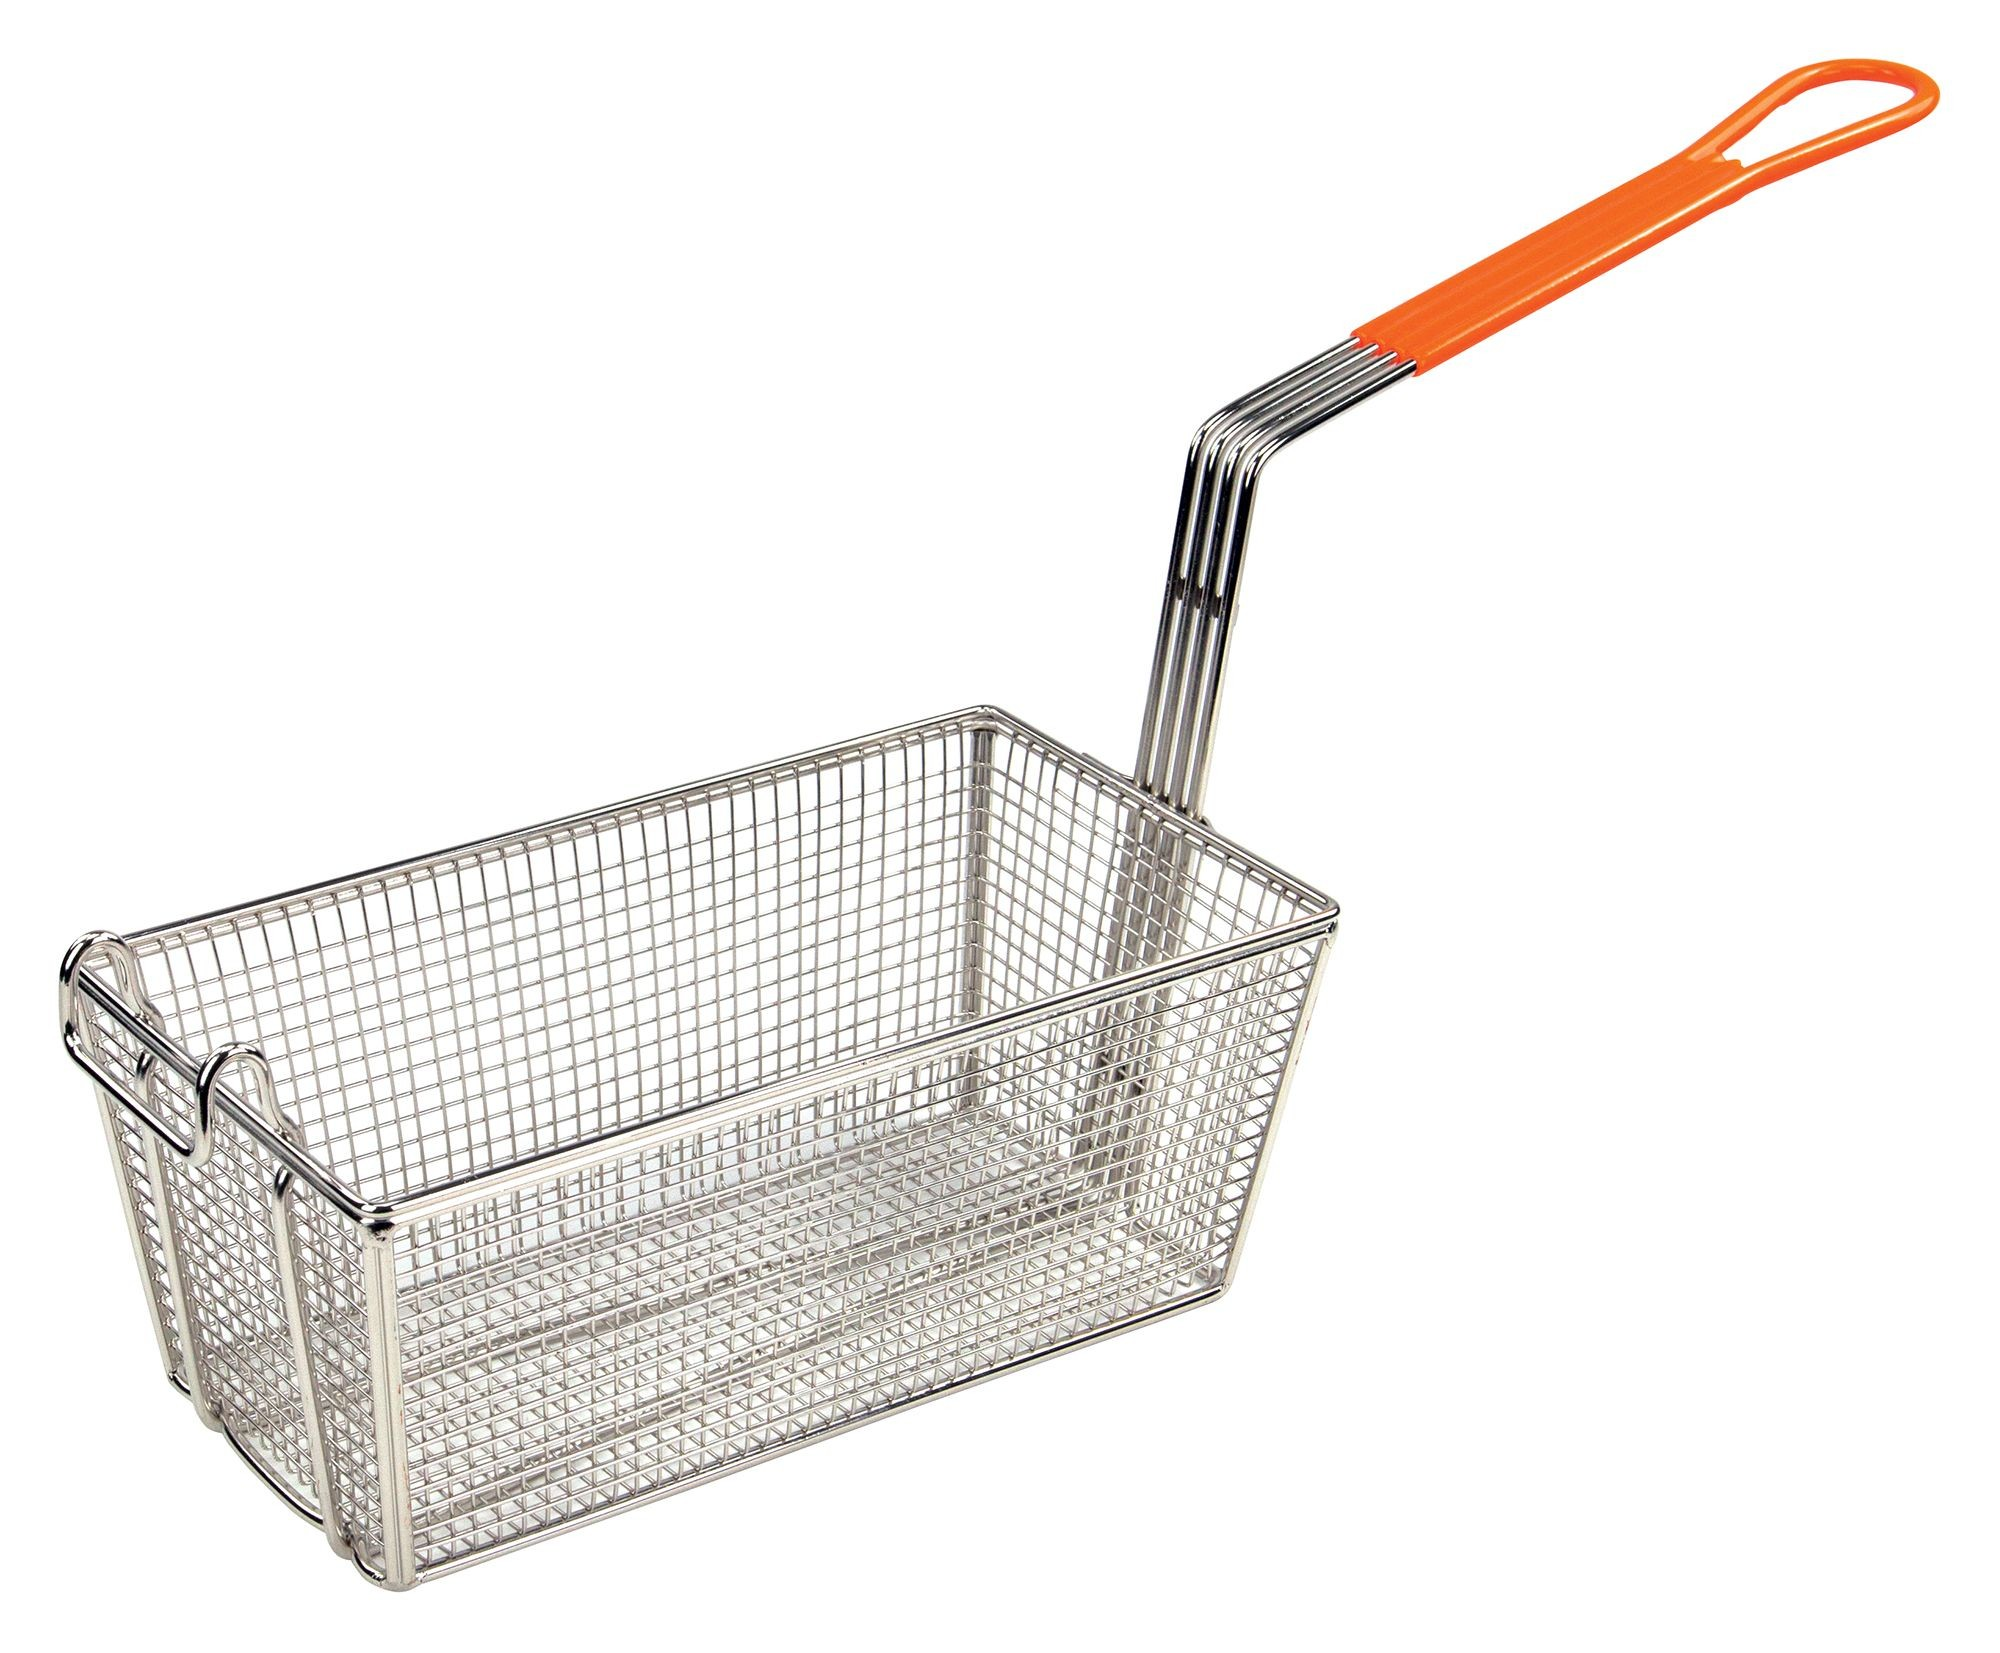 "Winco fb-10 Heavy Duty Fry Basket with Orange Handle 12-1/8"" x 6-1/2"" x 5-3/8"""